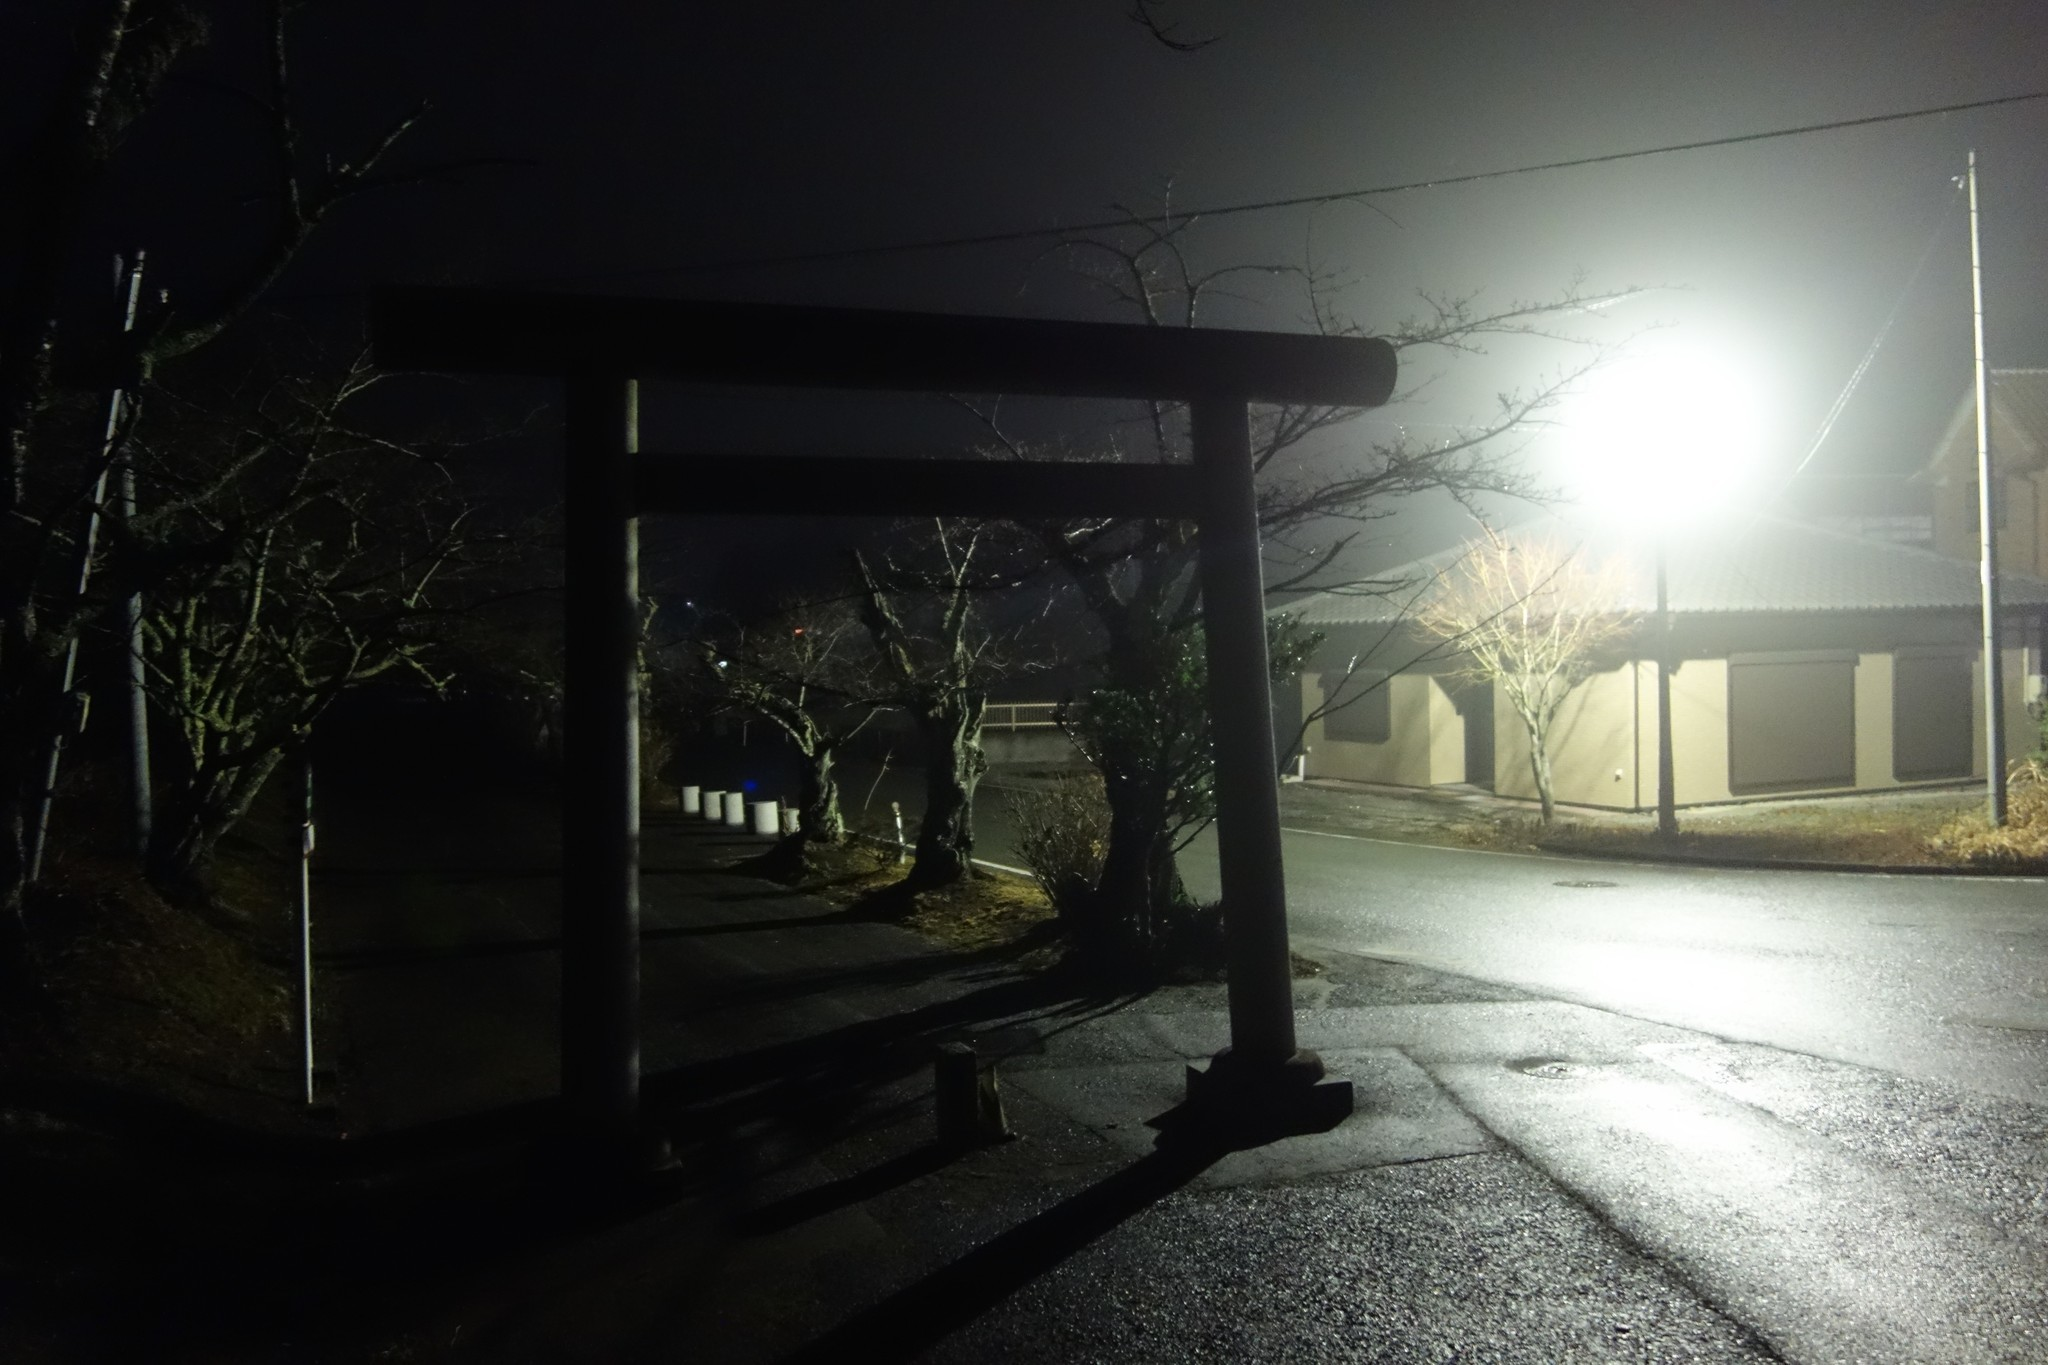 Abandoned town night